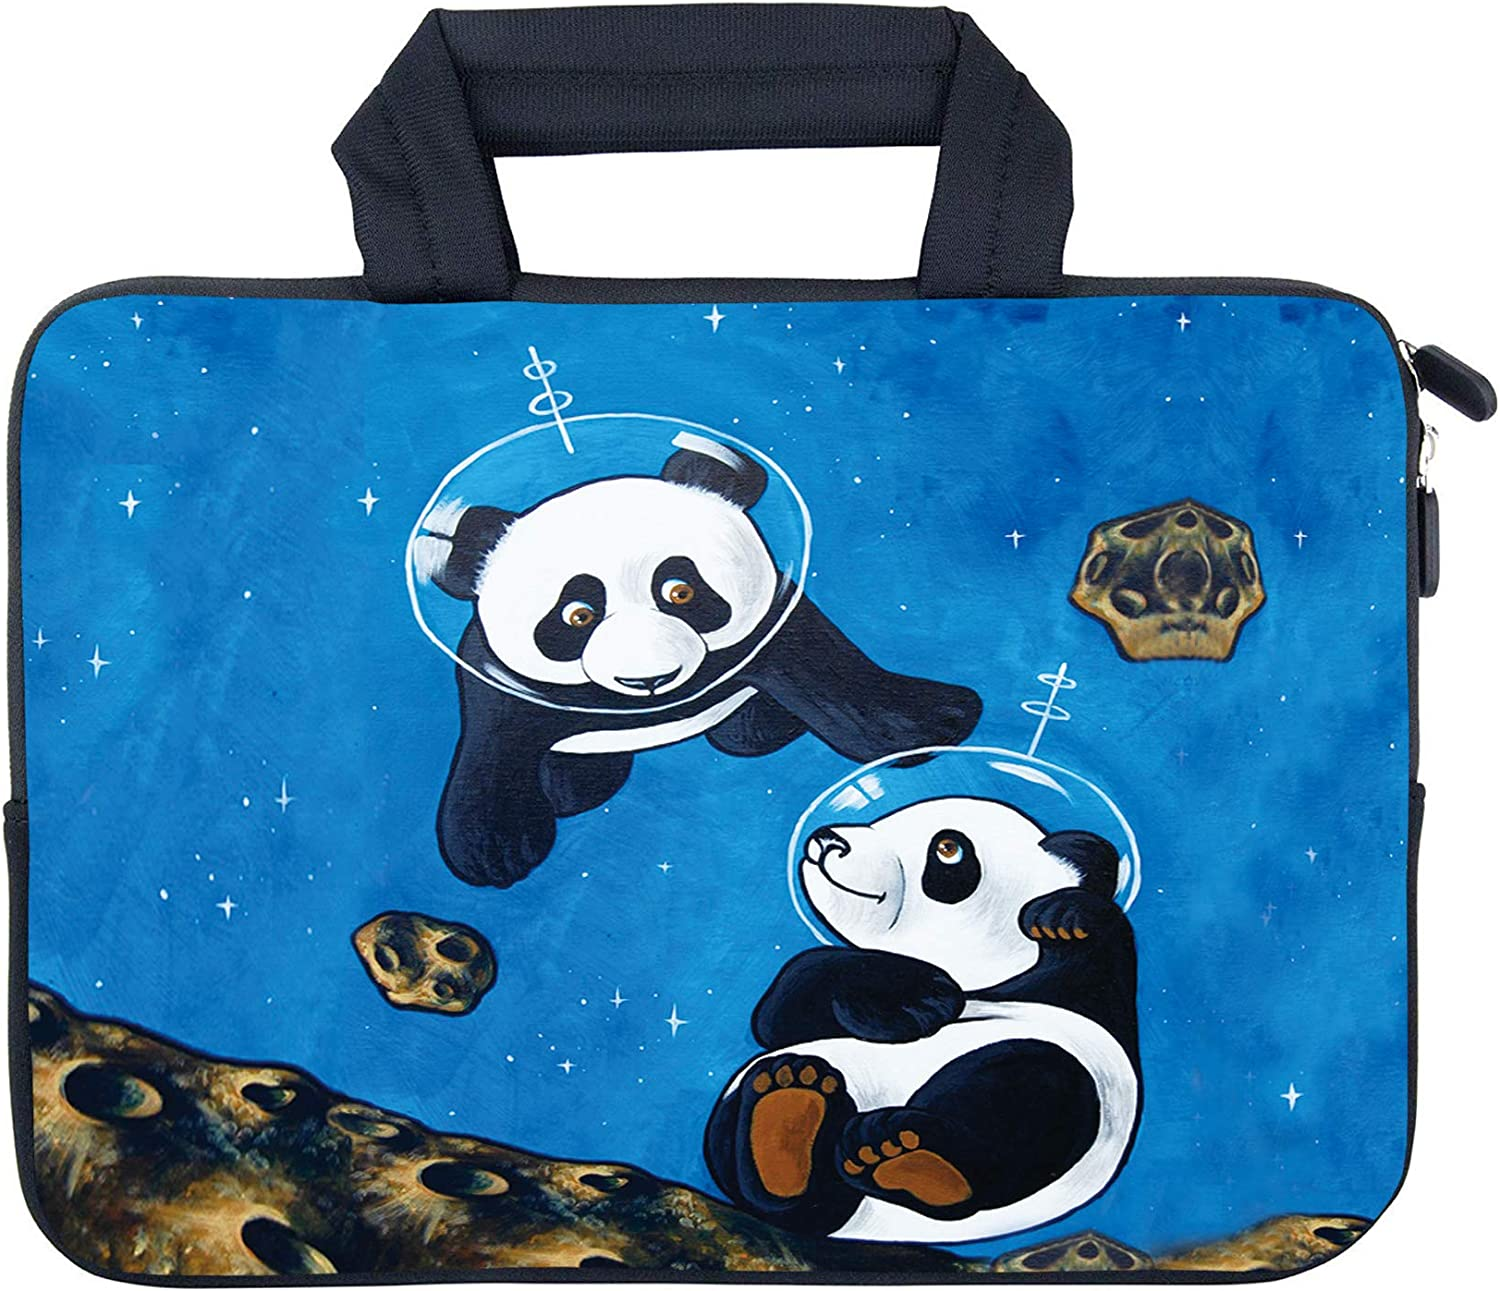 "AMARY 11.6"" 12"" 12.1"" 12.5 inch Laptop Handle Bag Neoprene Notebook Carrying Pouch Chromebook Sleeve Ultrabook Case Tablet Cover Fit Apple MacBook Air HP DELL Lenovo Asus Samsung (Panda)"